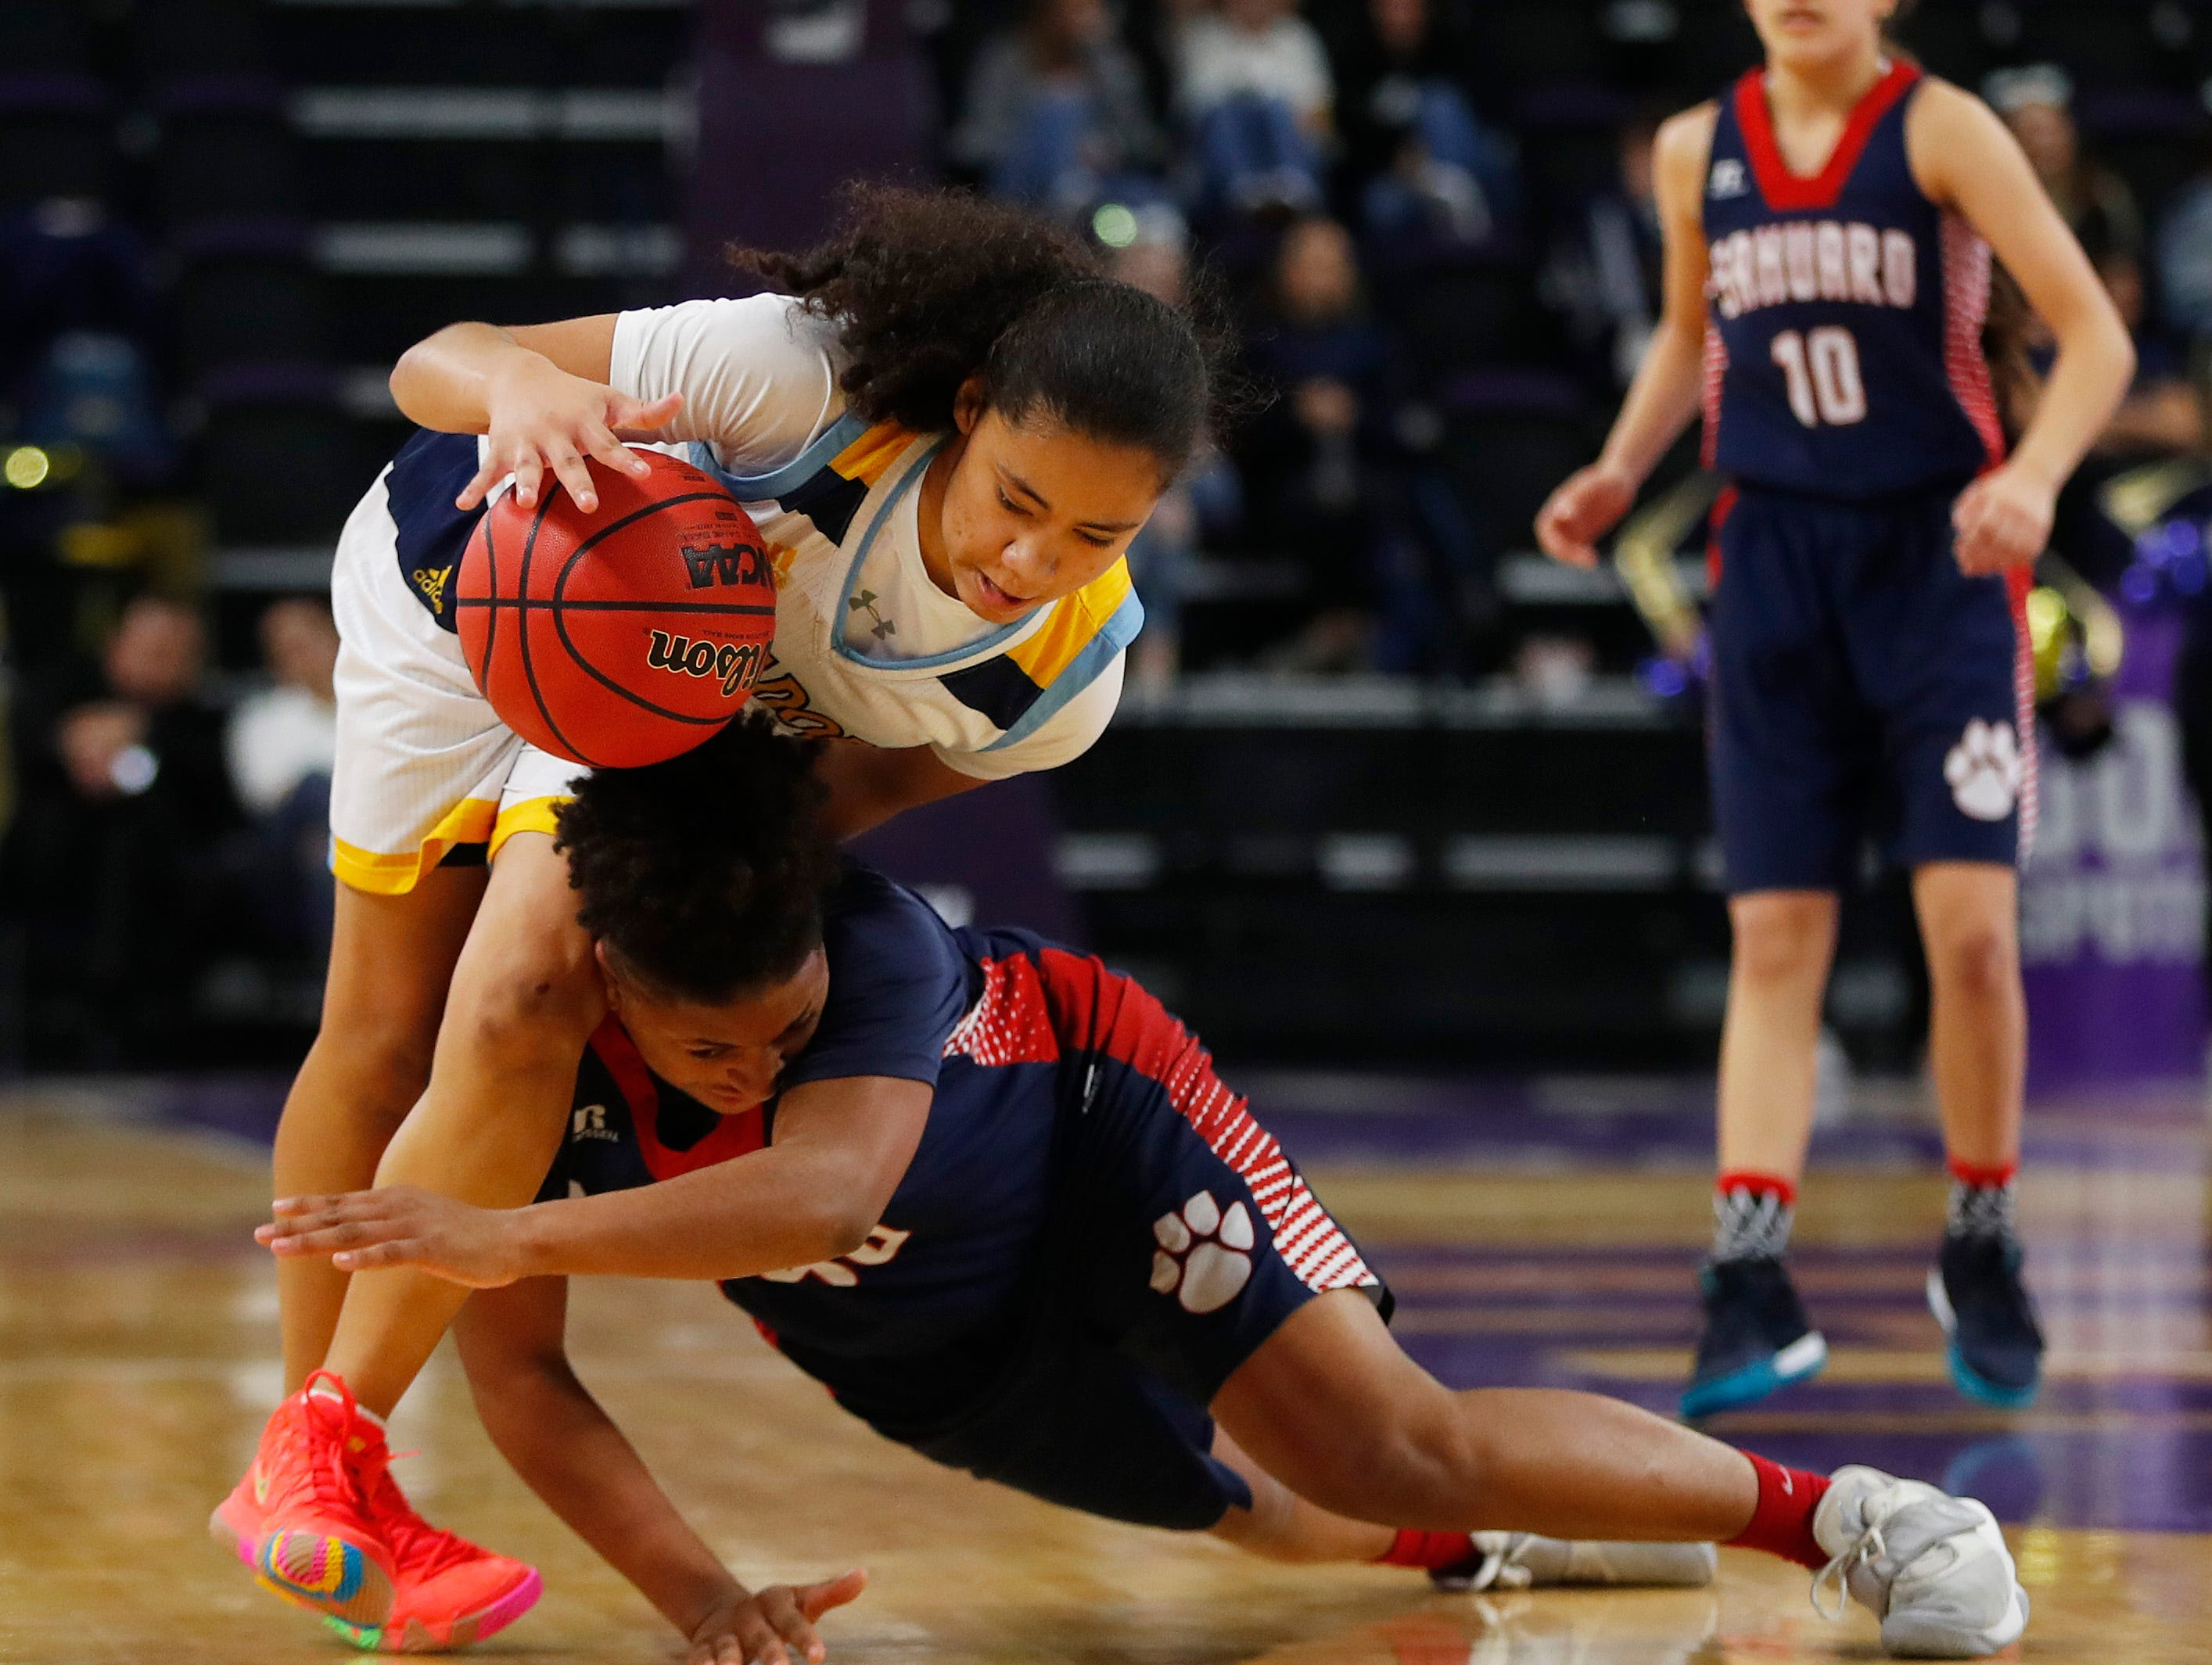 Sahuaro's Lilly Watson (50) dives into the legs of Shadow Mountain's Senya Rabouin (2) during second half of the 4A girls basketball semifinal game at Grand Canyon University Arena in Phoenix, Ariz. on February 22, 2019.